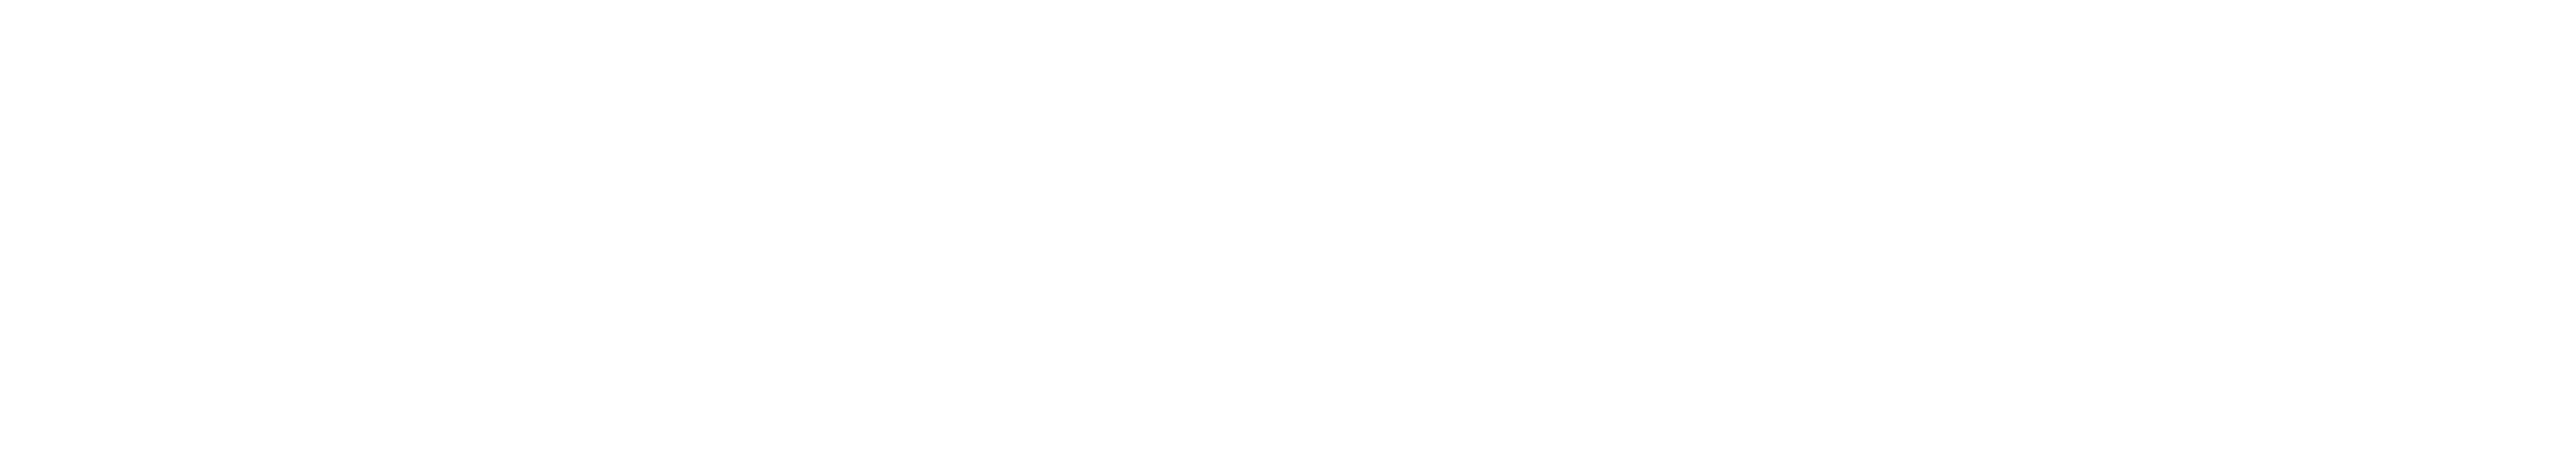 Cheeterz Firearm Accessories Logo White